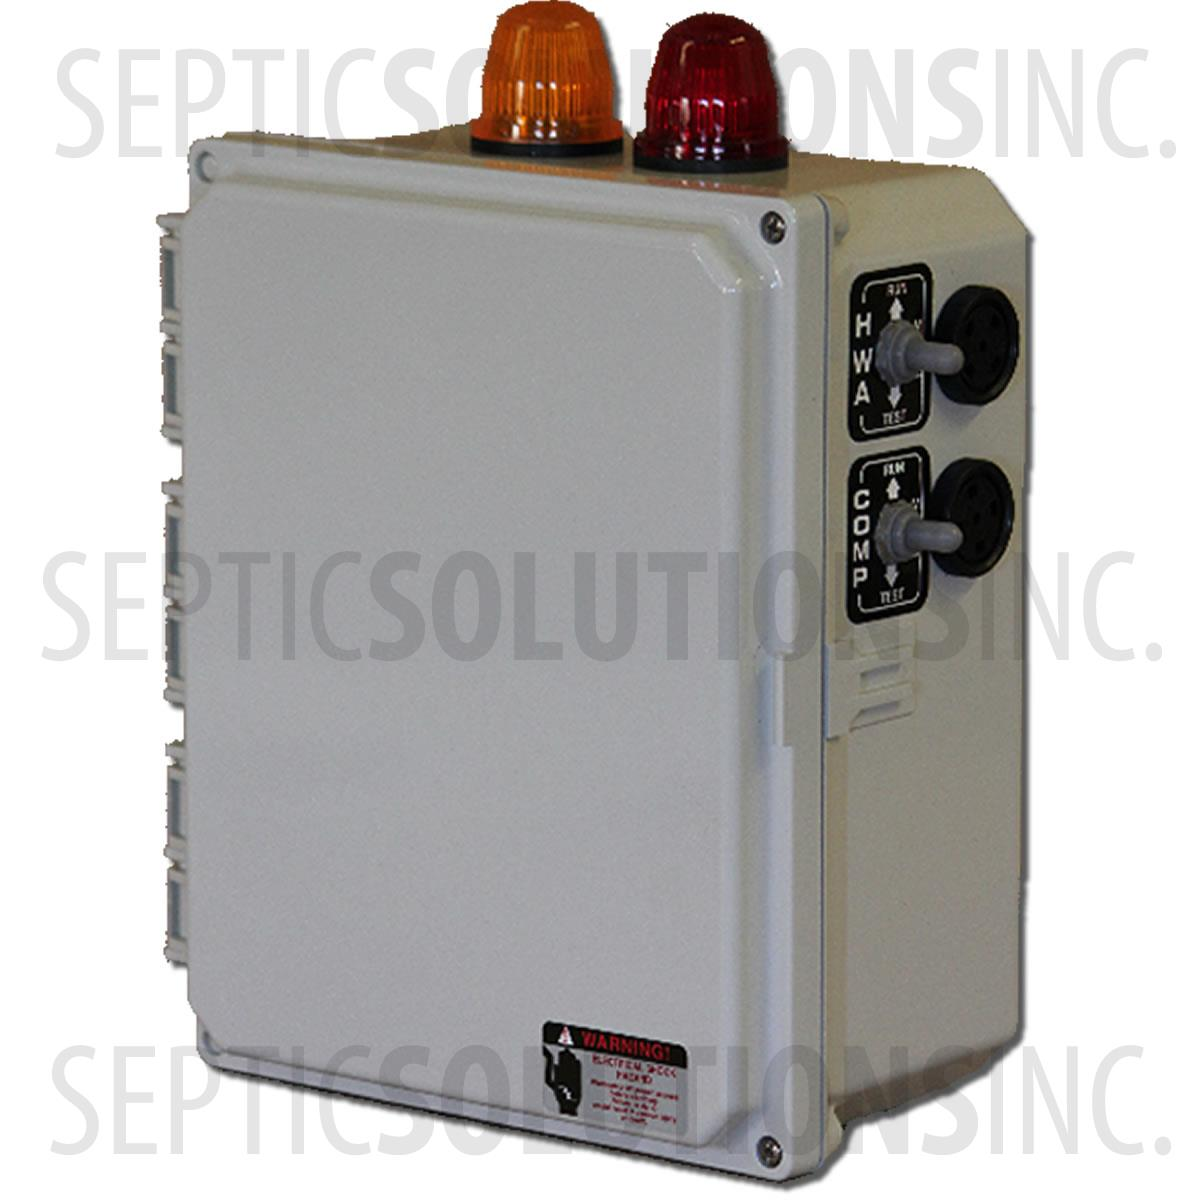 50B006_2?w=300 aerobic septic system control panels and alarms free shipping  at edmiracle.co